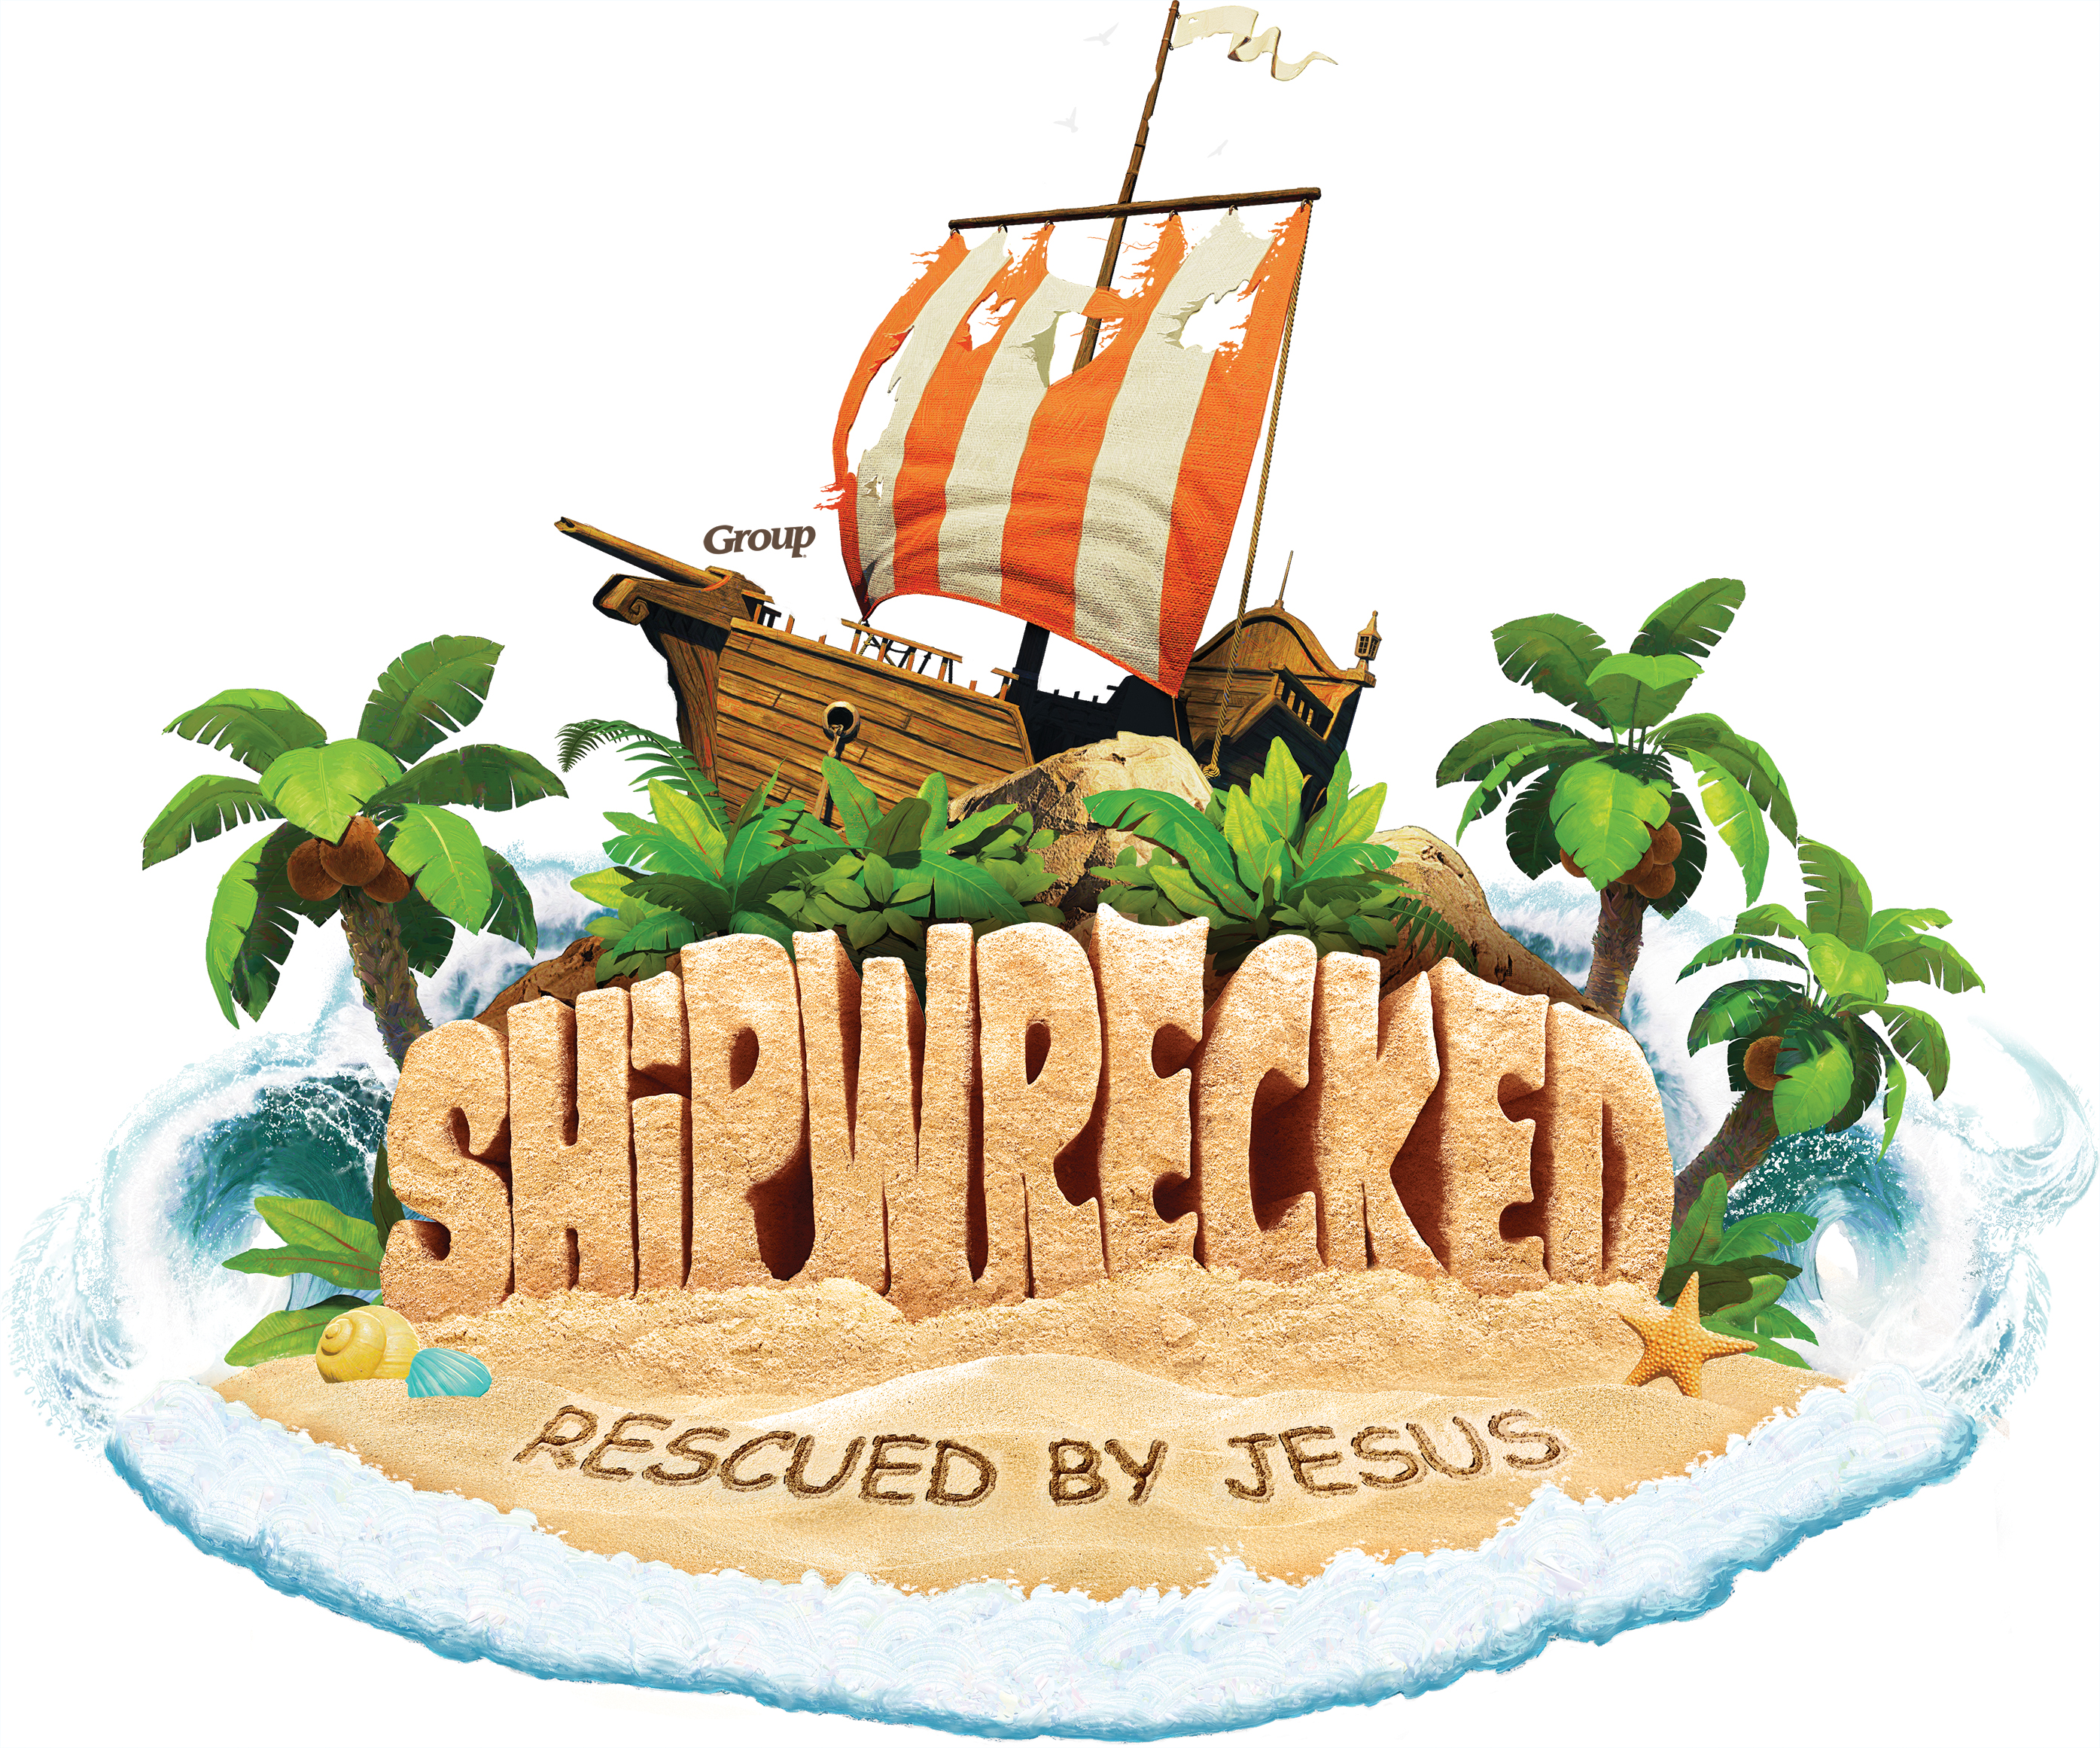 Free vbs clipart jpg black and white stock Shipwrecked VBS | Free Resources & Downloads jpg black and white stock